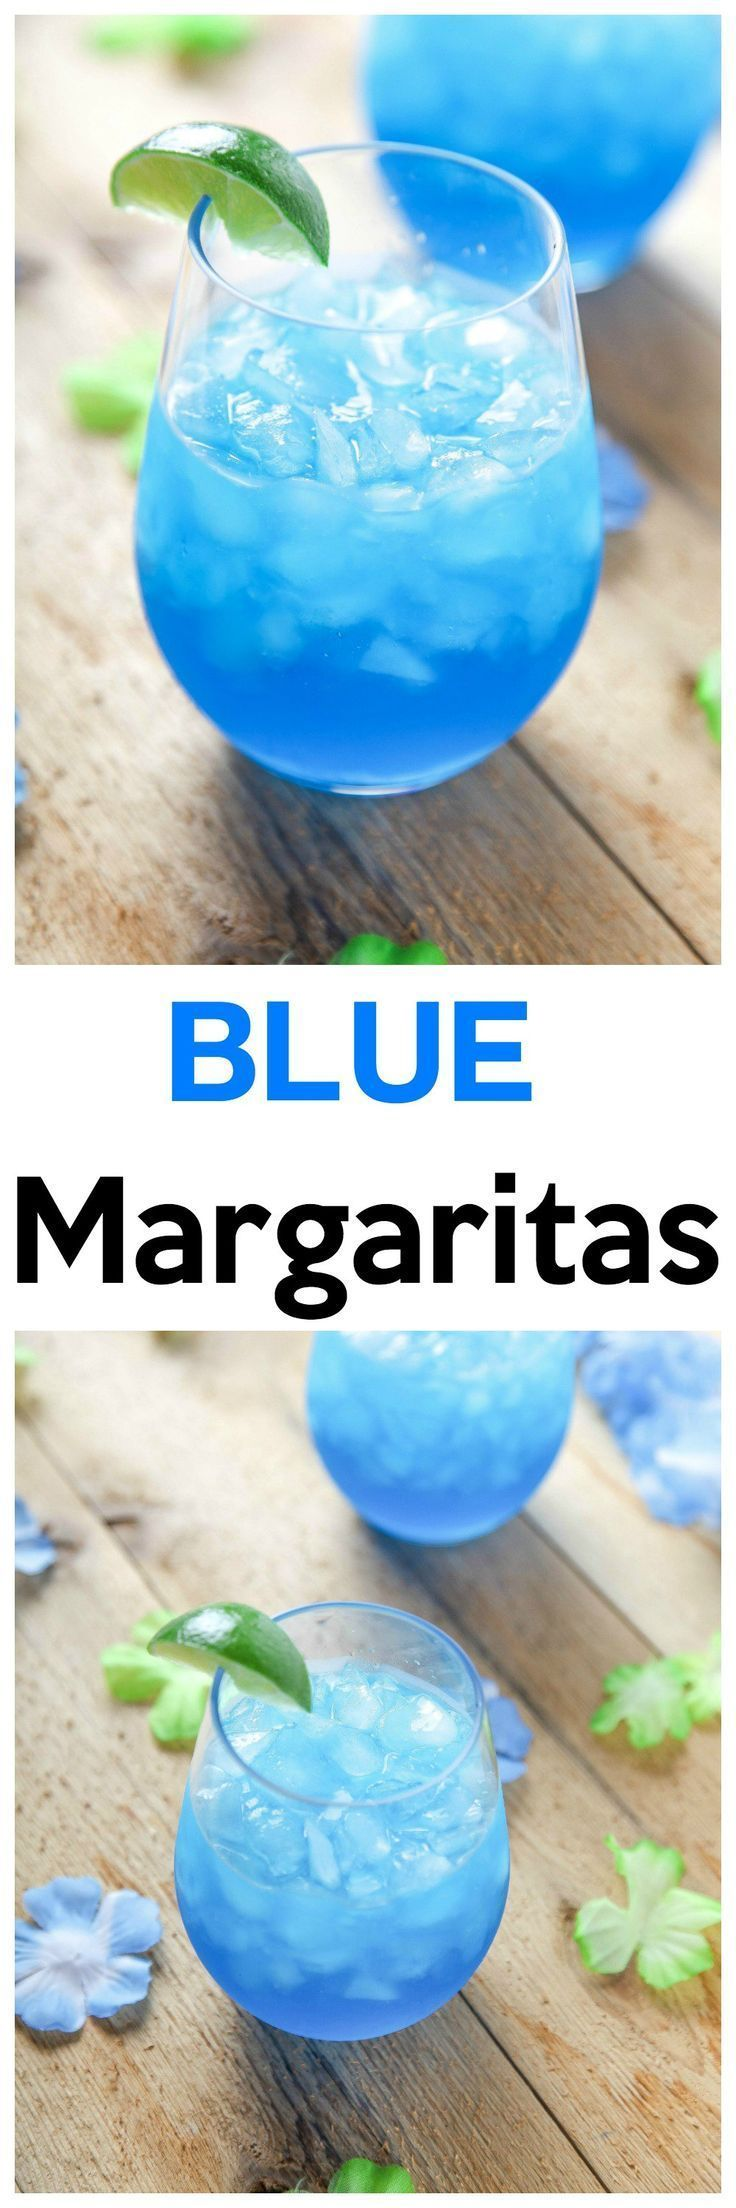 Blue Margaritas: These incredibly refreshing margaritas are SO easy!They only require 4 ingredients, and no blender/cocktail shaker! #Cocktailrecipes